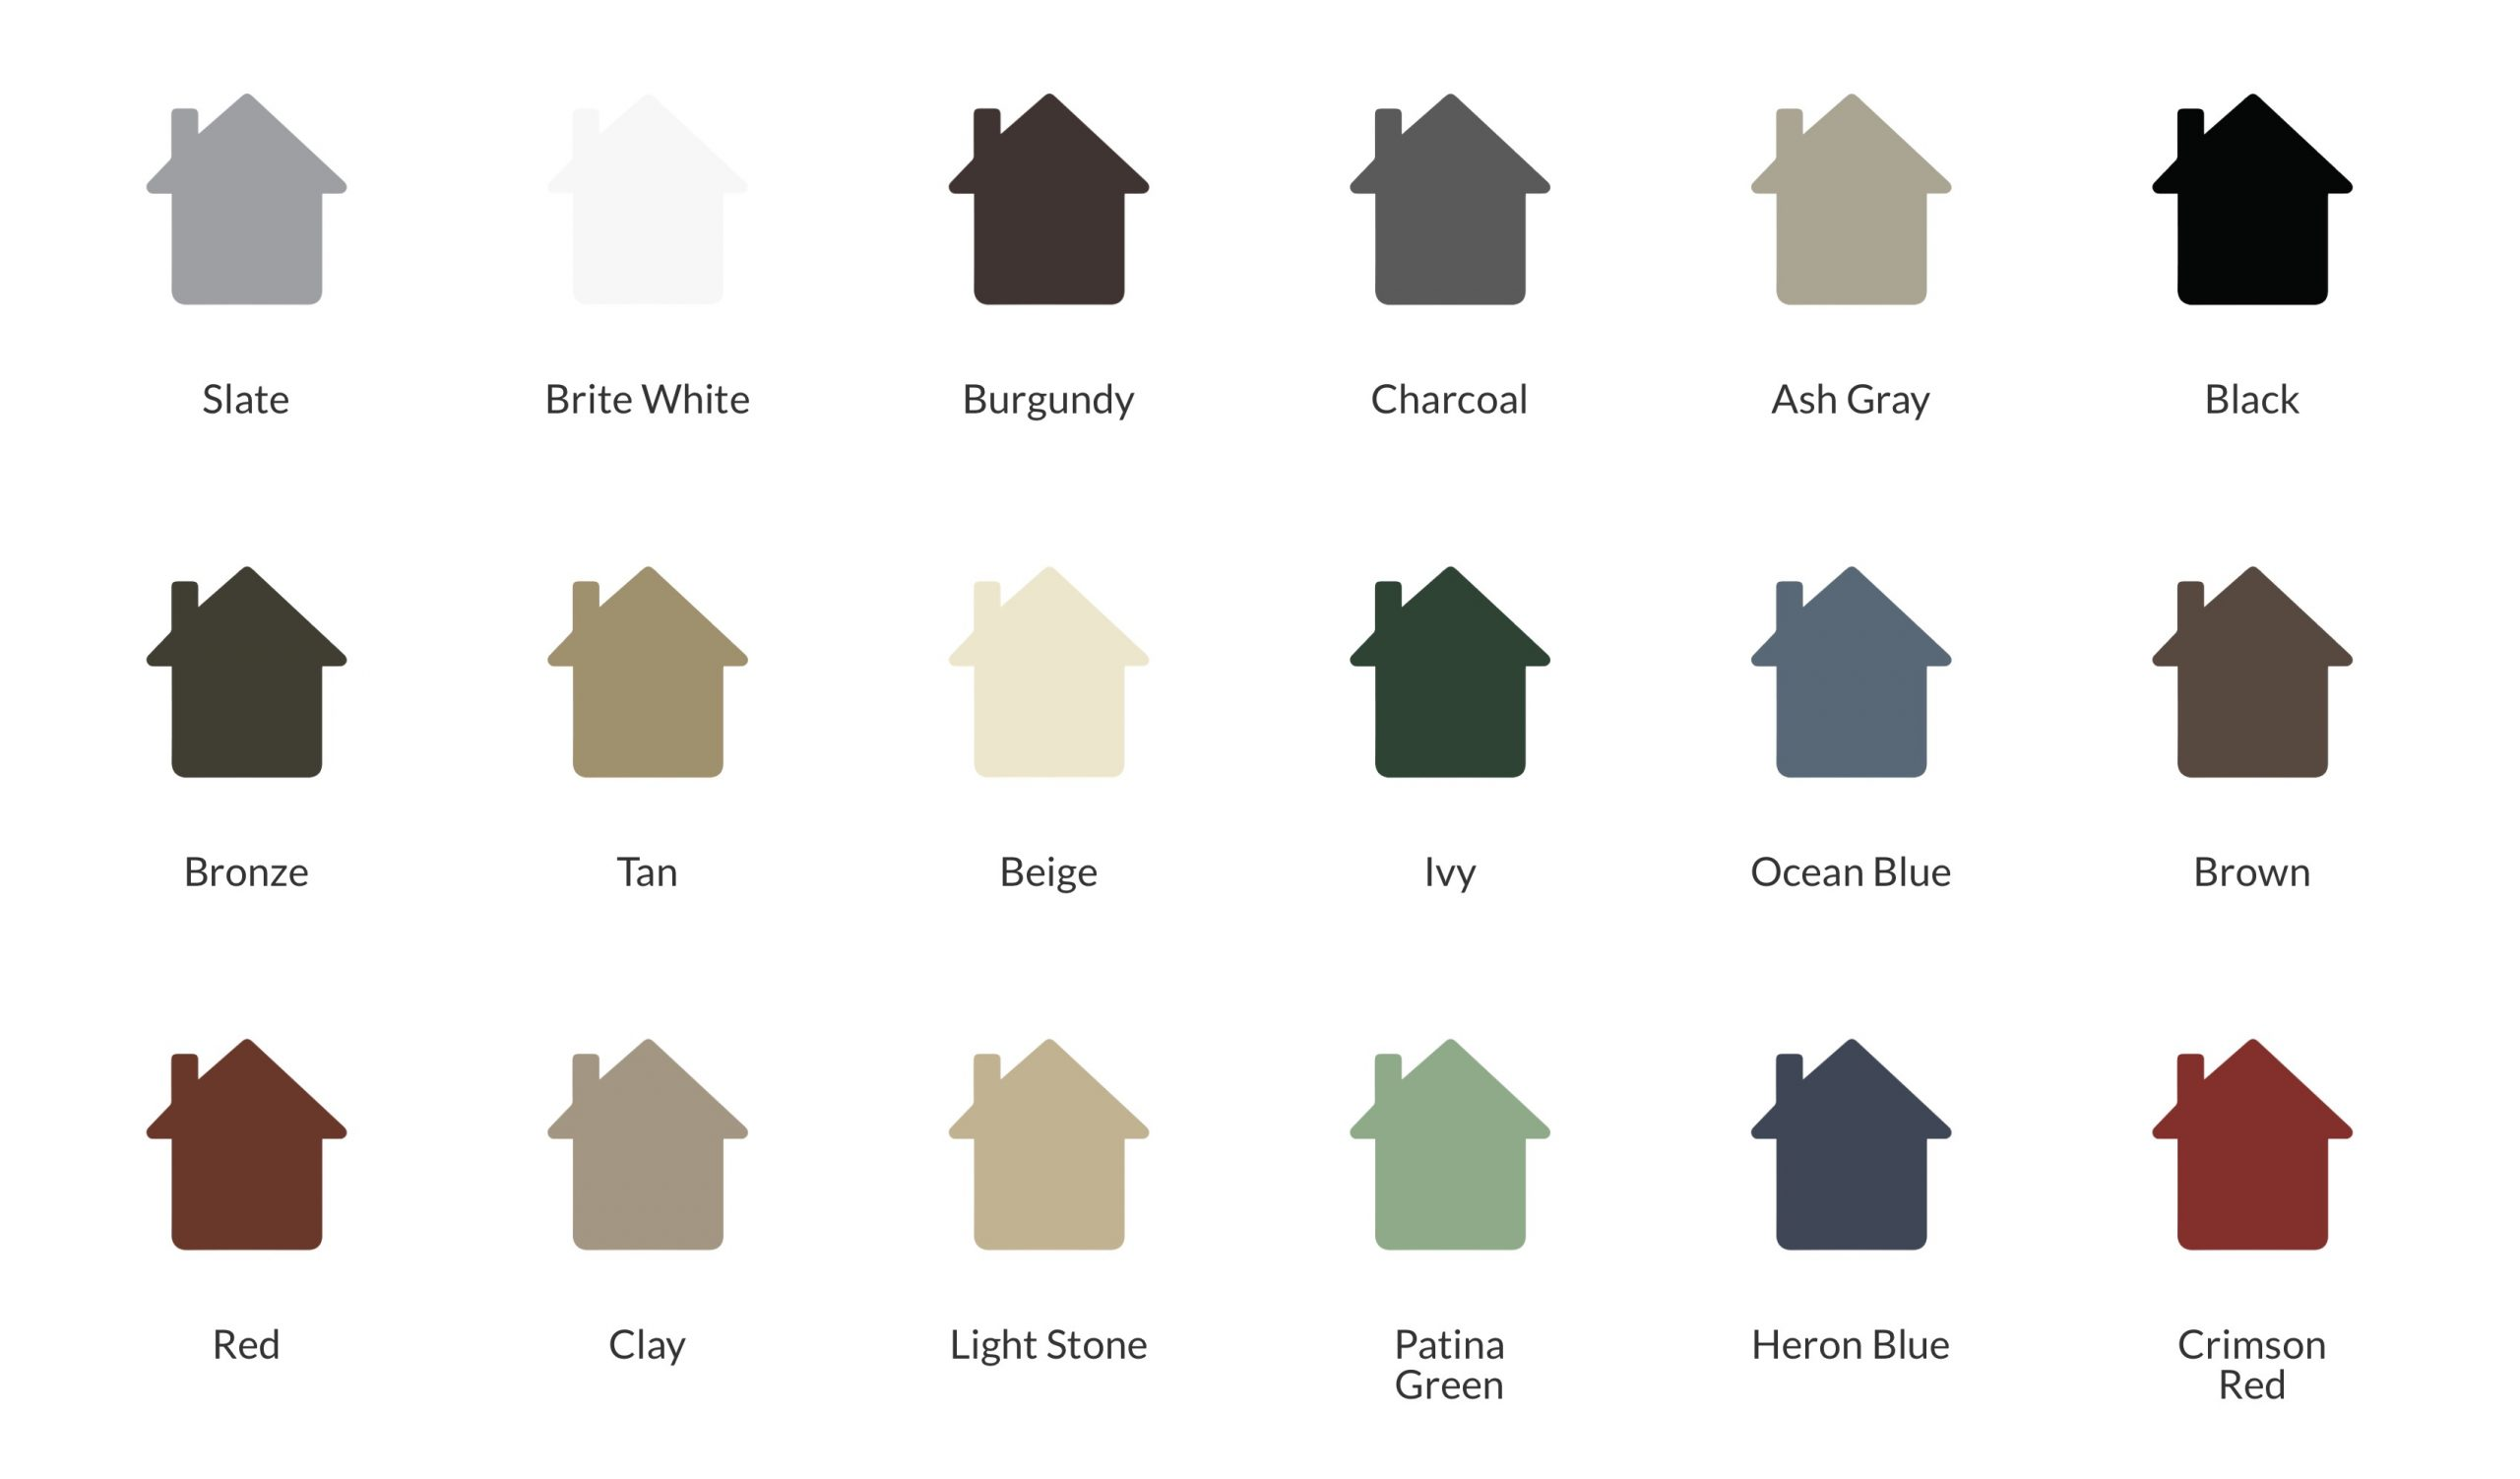 A silhouette of houses in various colors.